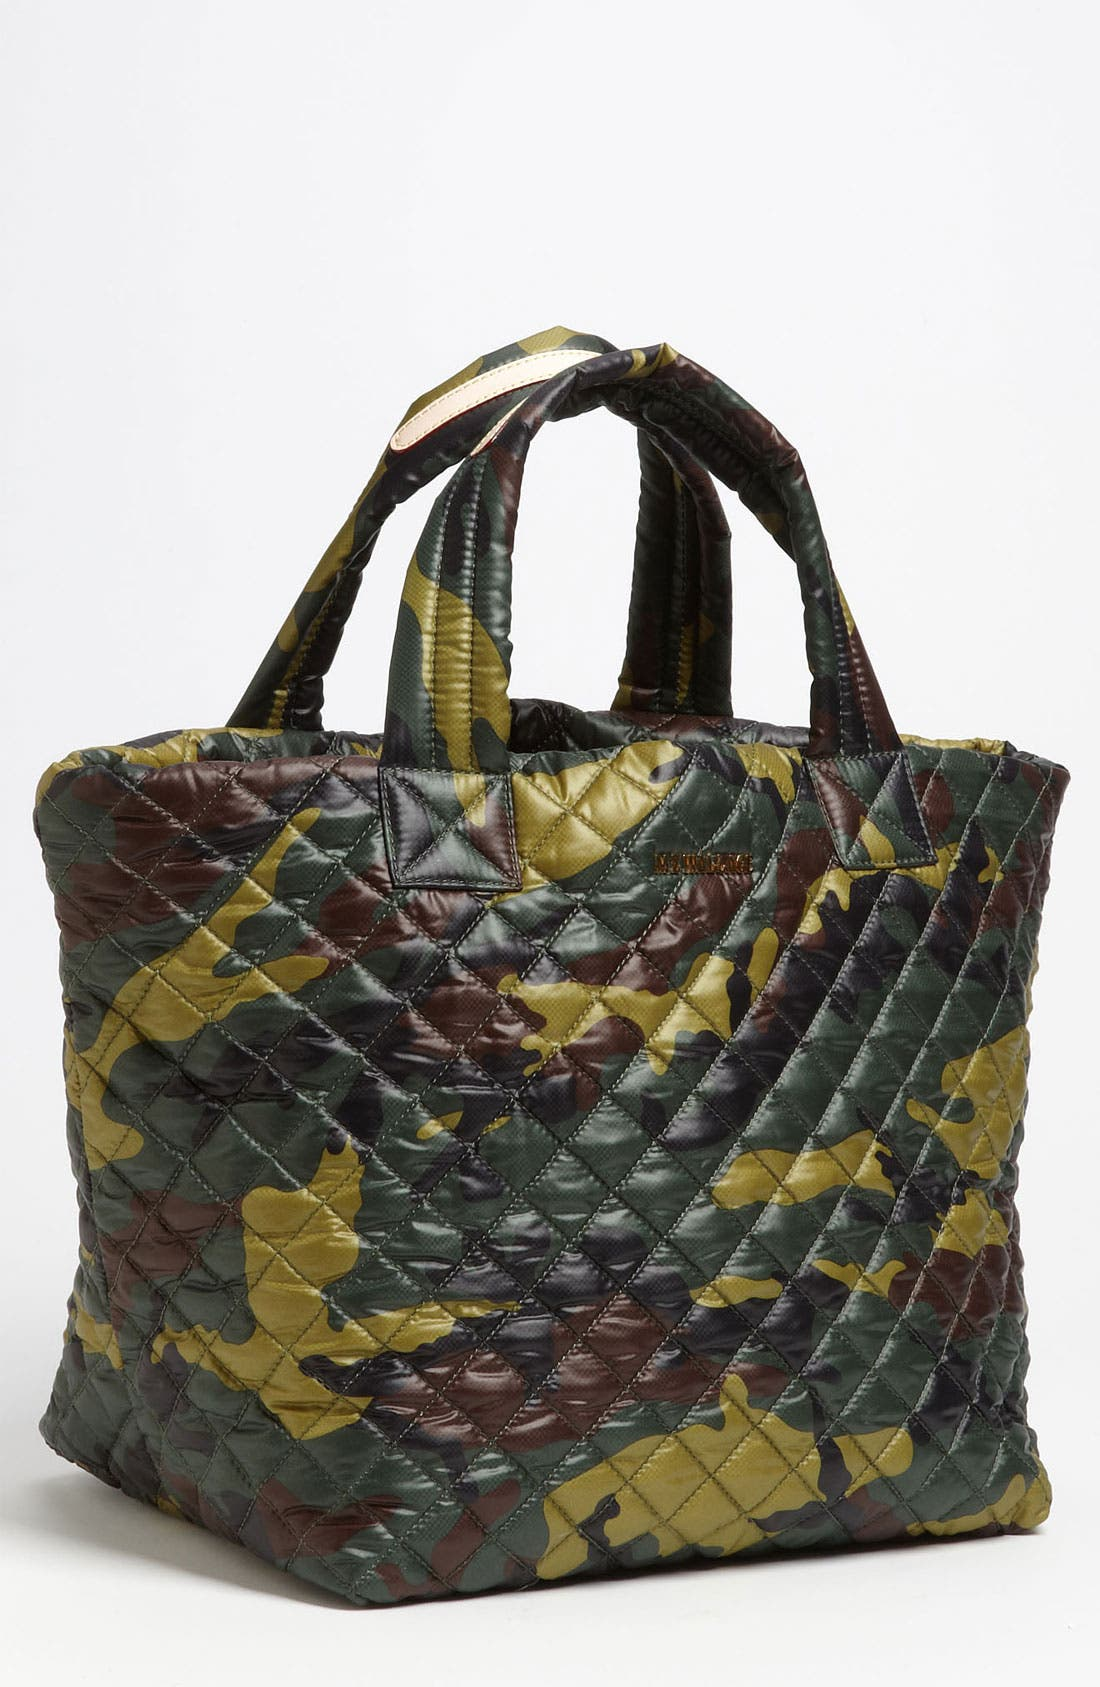 Alternate Image 1 Selected - MZ Wallace 'Small Metro' Nylon Tote